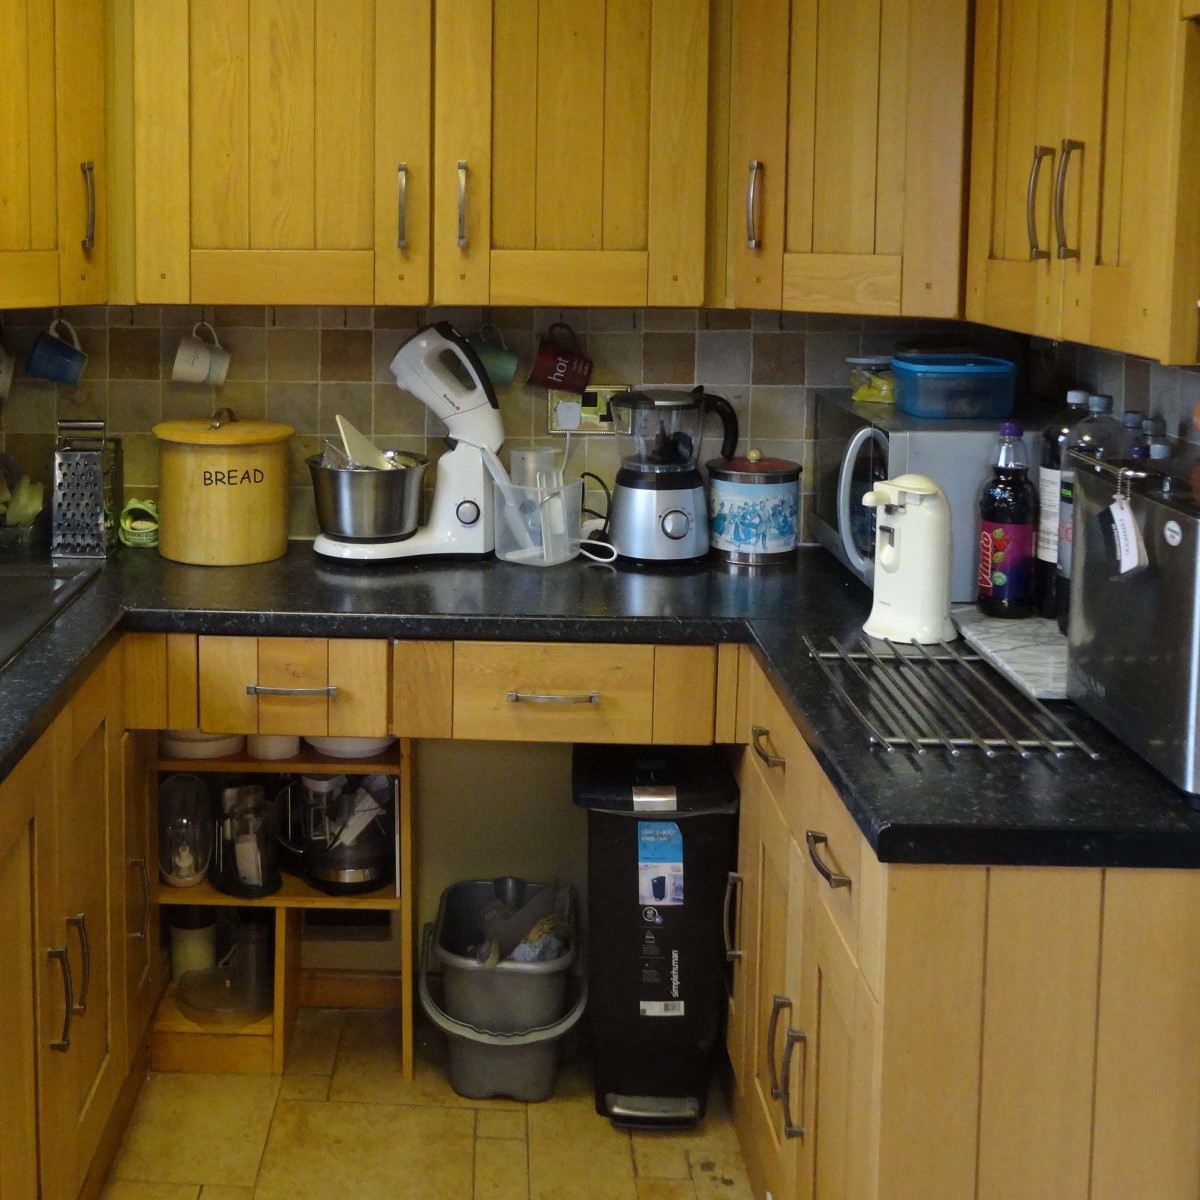 6 Simple Steps To Make Your Small Kitchen Work: How To Make Space Saving Shelving Under Your Kitchen Worktop